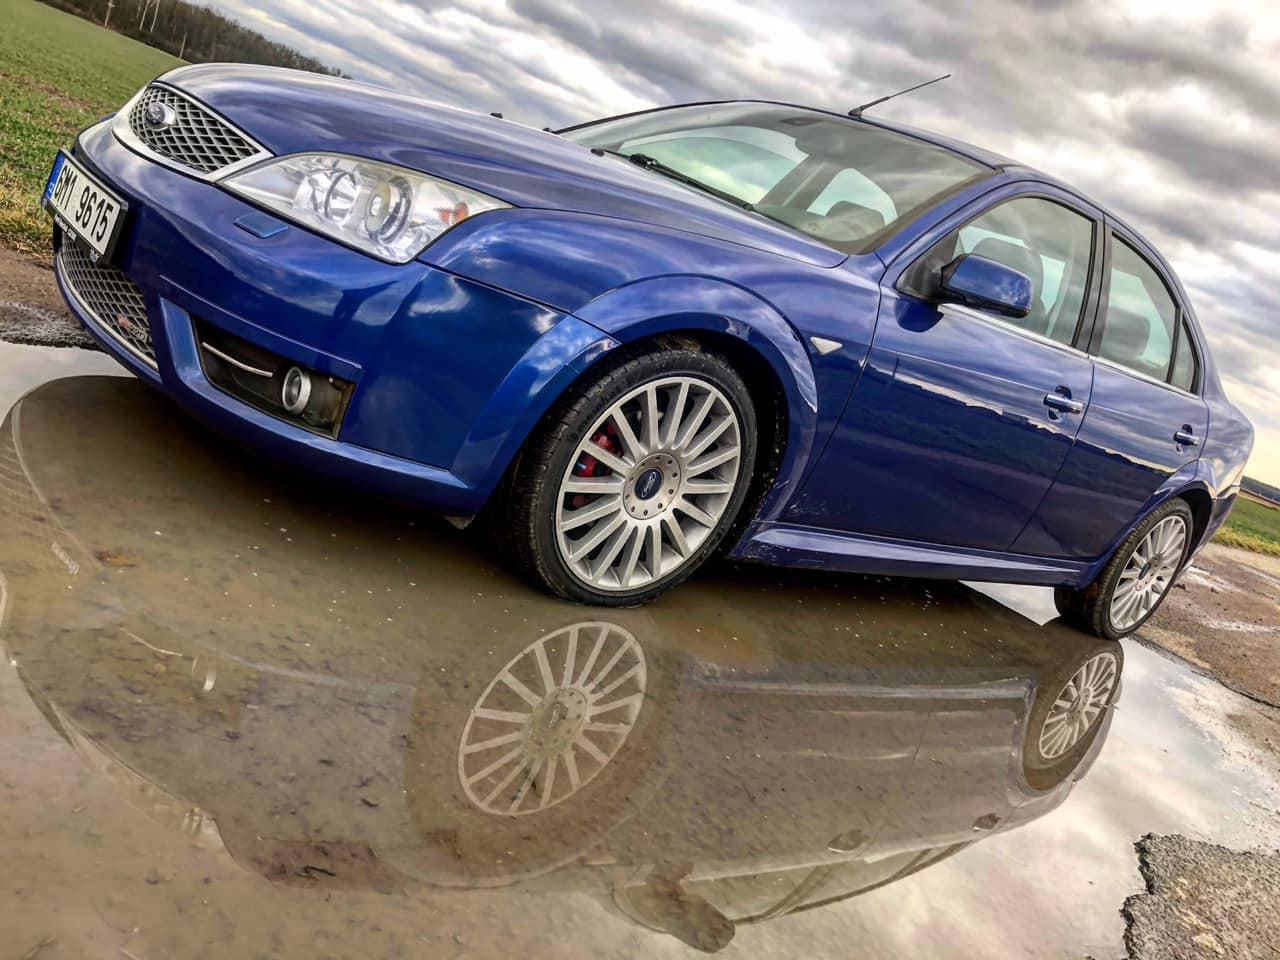 FORD MONDEO ST220 #pochlubse